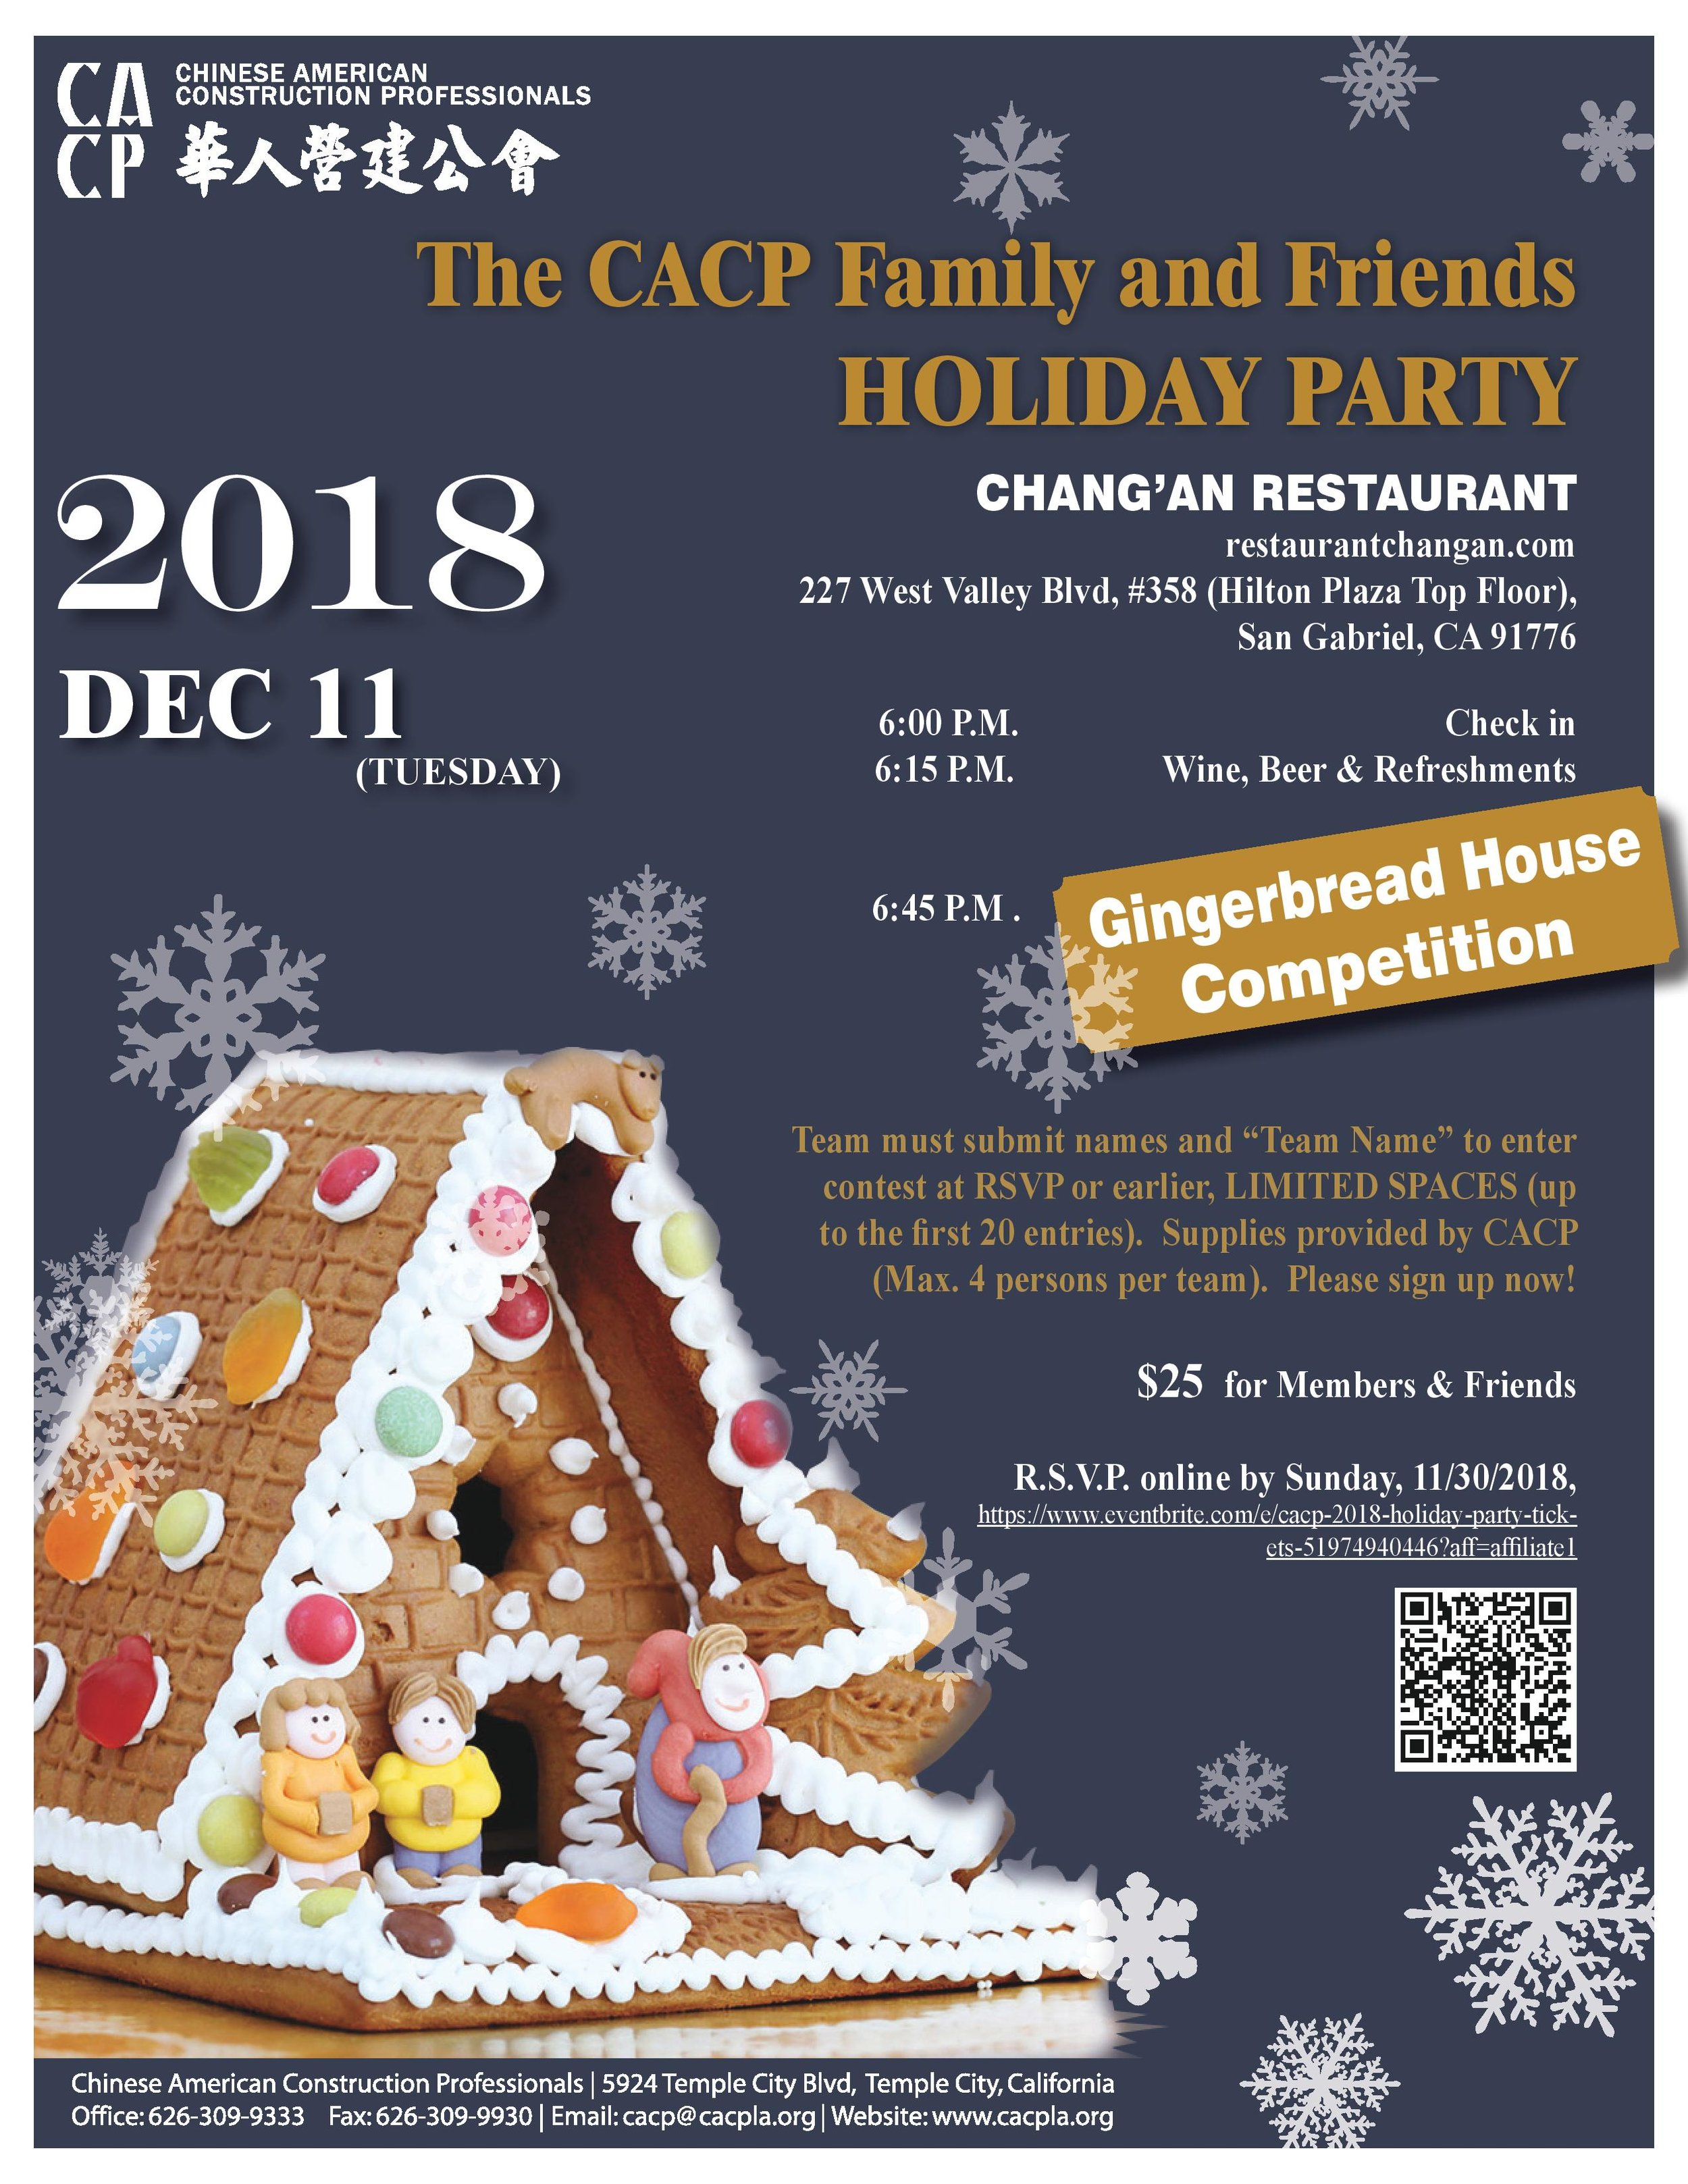 Cacp family and friends holiday party - December 11th, 2018